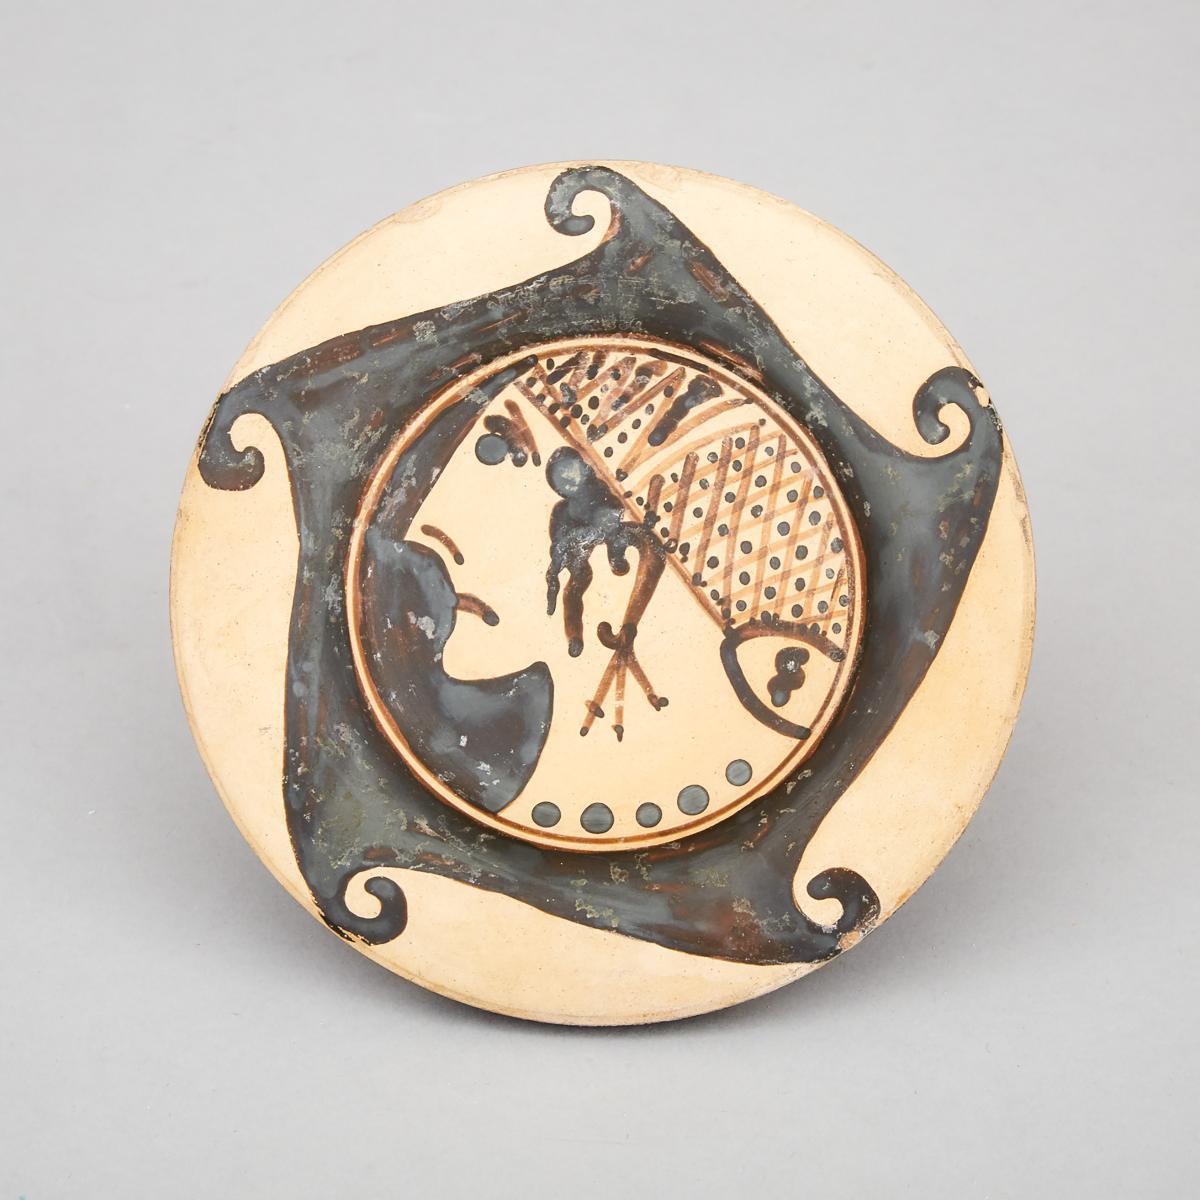 Greek Corinthean Pottery Kylix, 5th-4th centiury B.C., height 2.25 in — 5.7 cm, diameter 5.6 in — 14 - Image 2 of 2